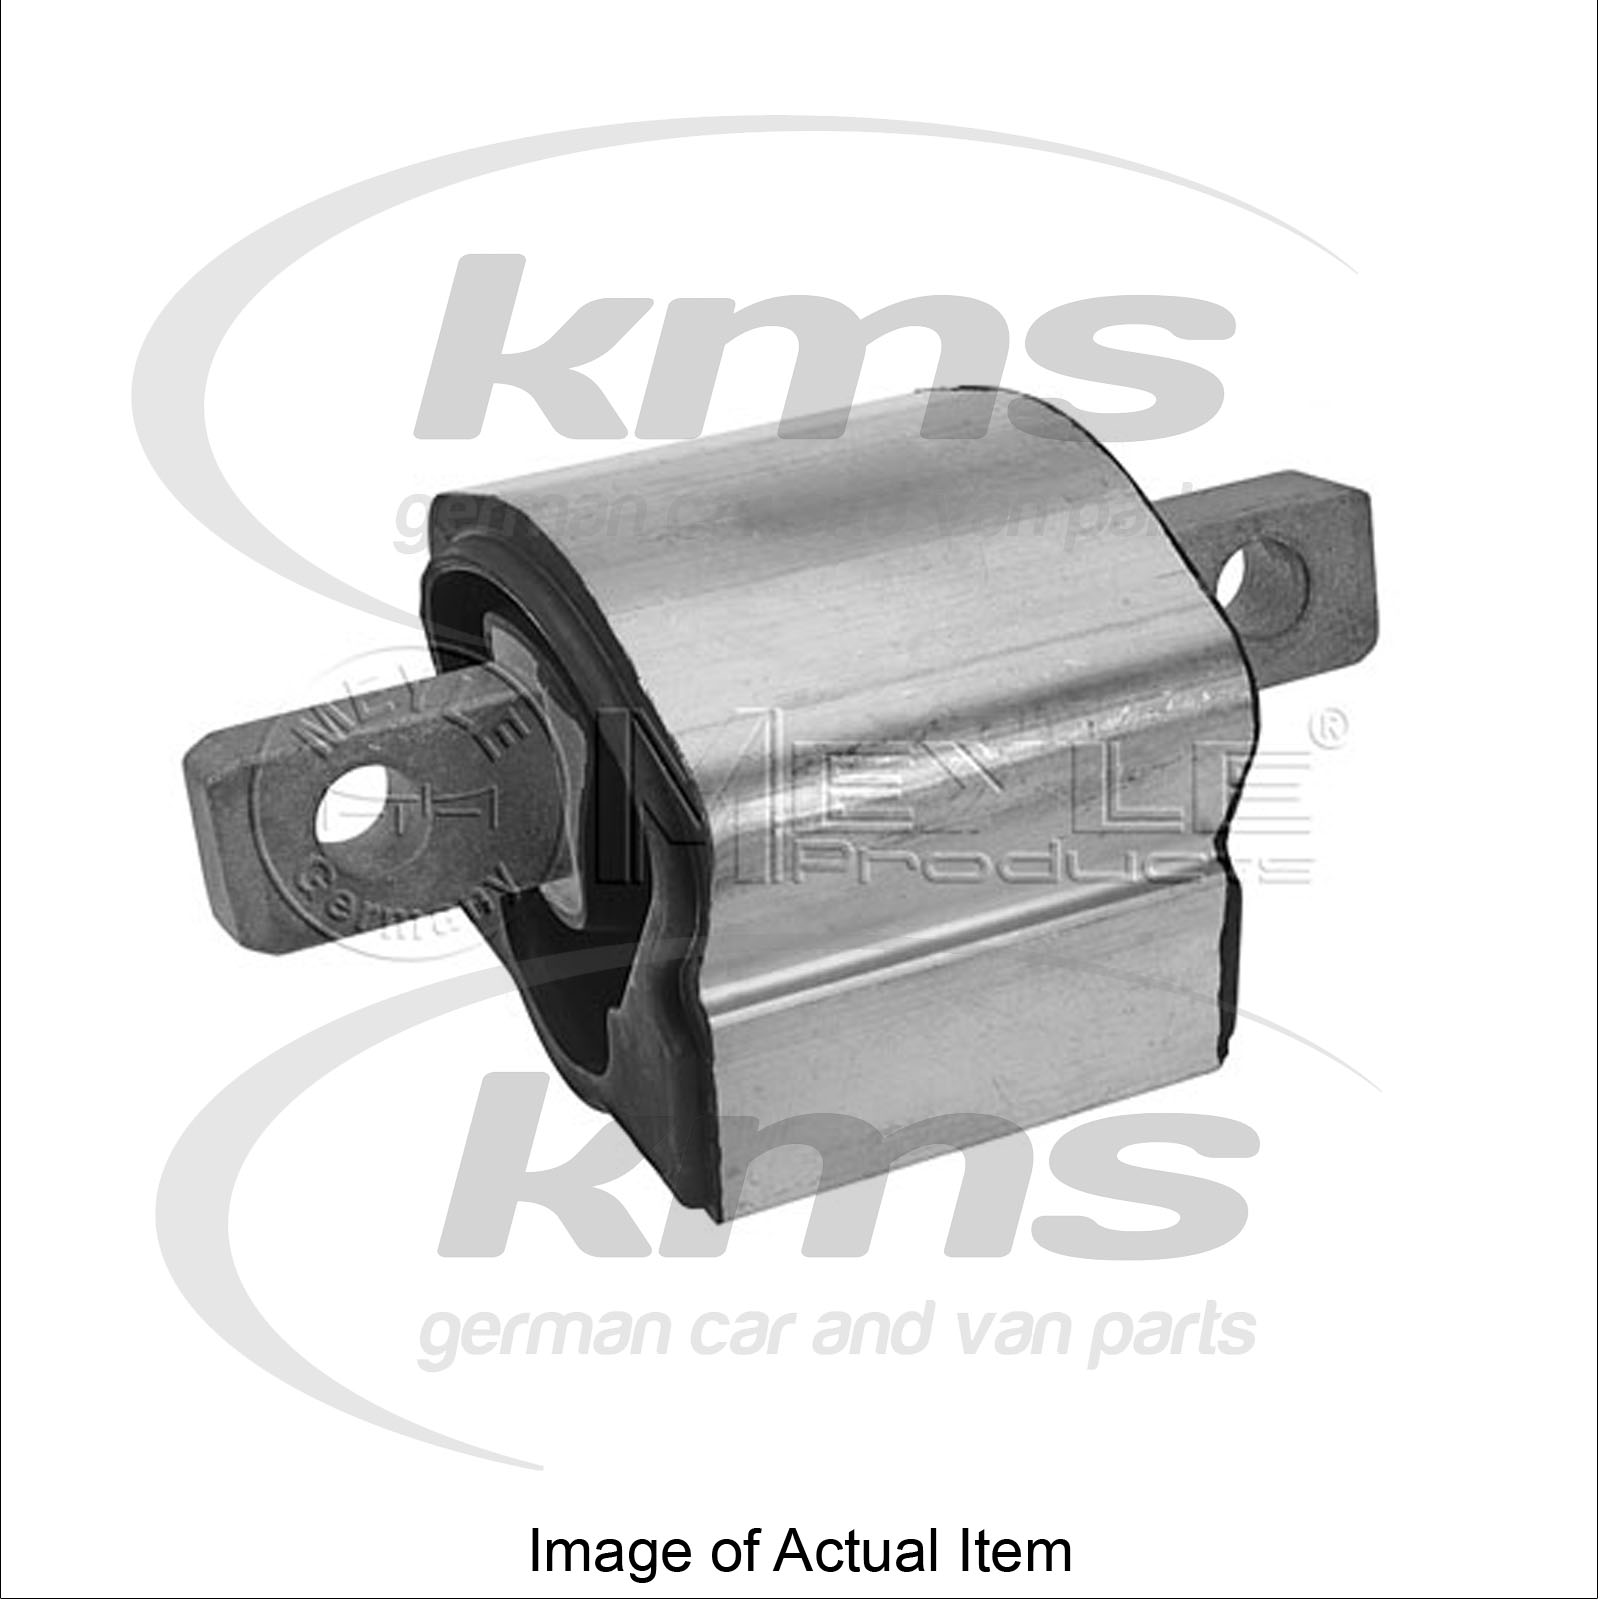 Mounting For Manual Transmission Mercedes Clk C209 200 border=